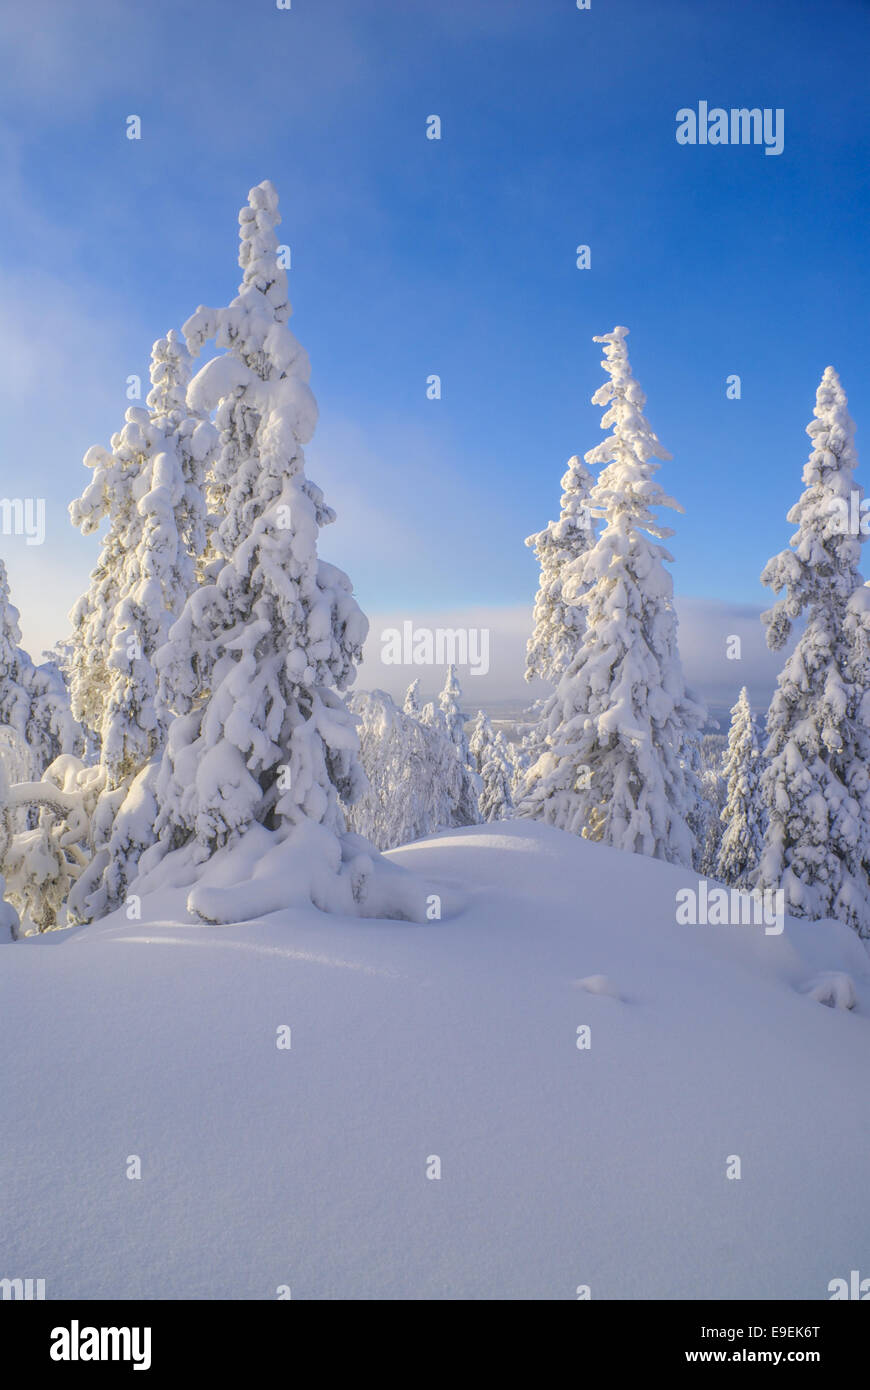 Picturesque view of trees almost completely hidden by snow - Stock Image